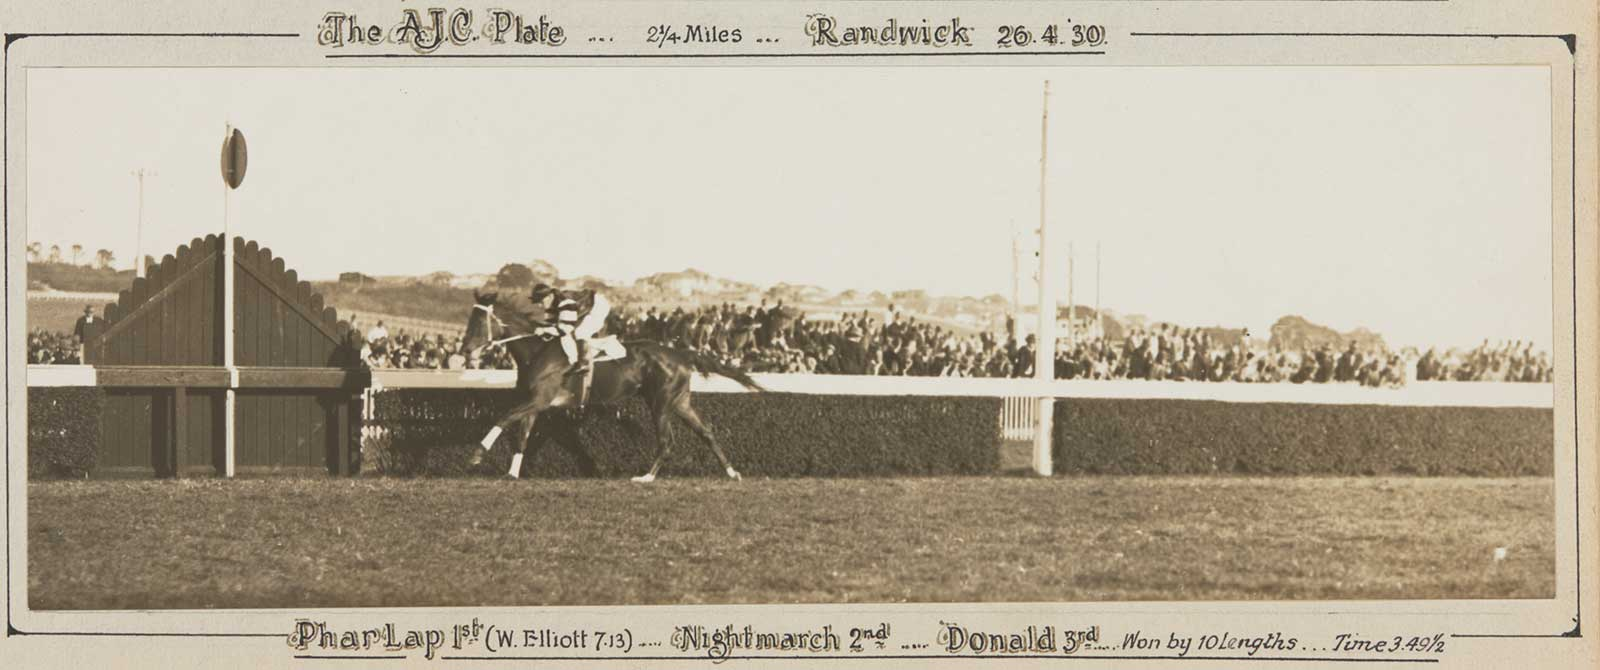 A black and white photo of Phar Lap winning the AJC Plate, 1930. - click to view larger image